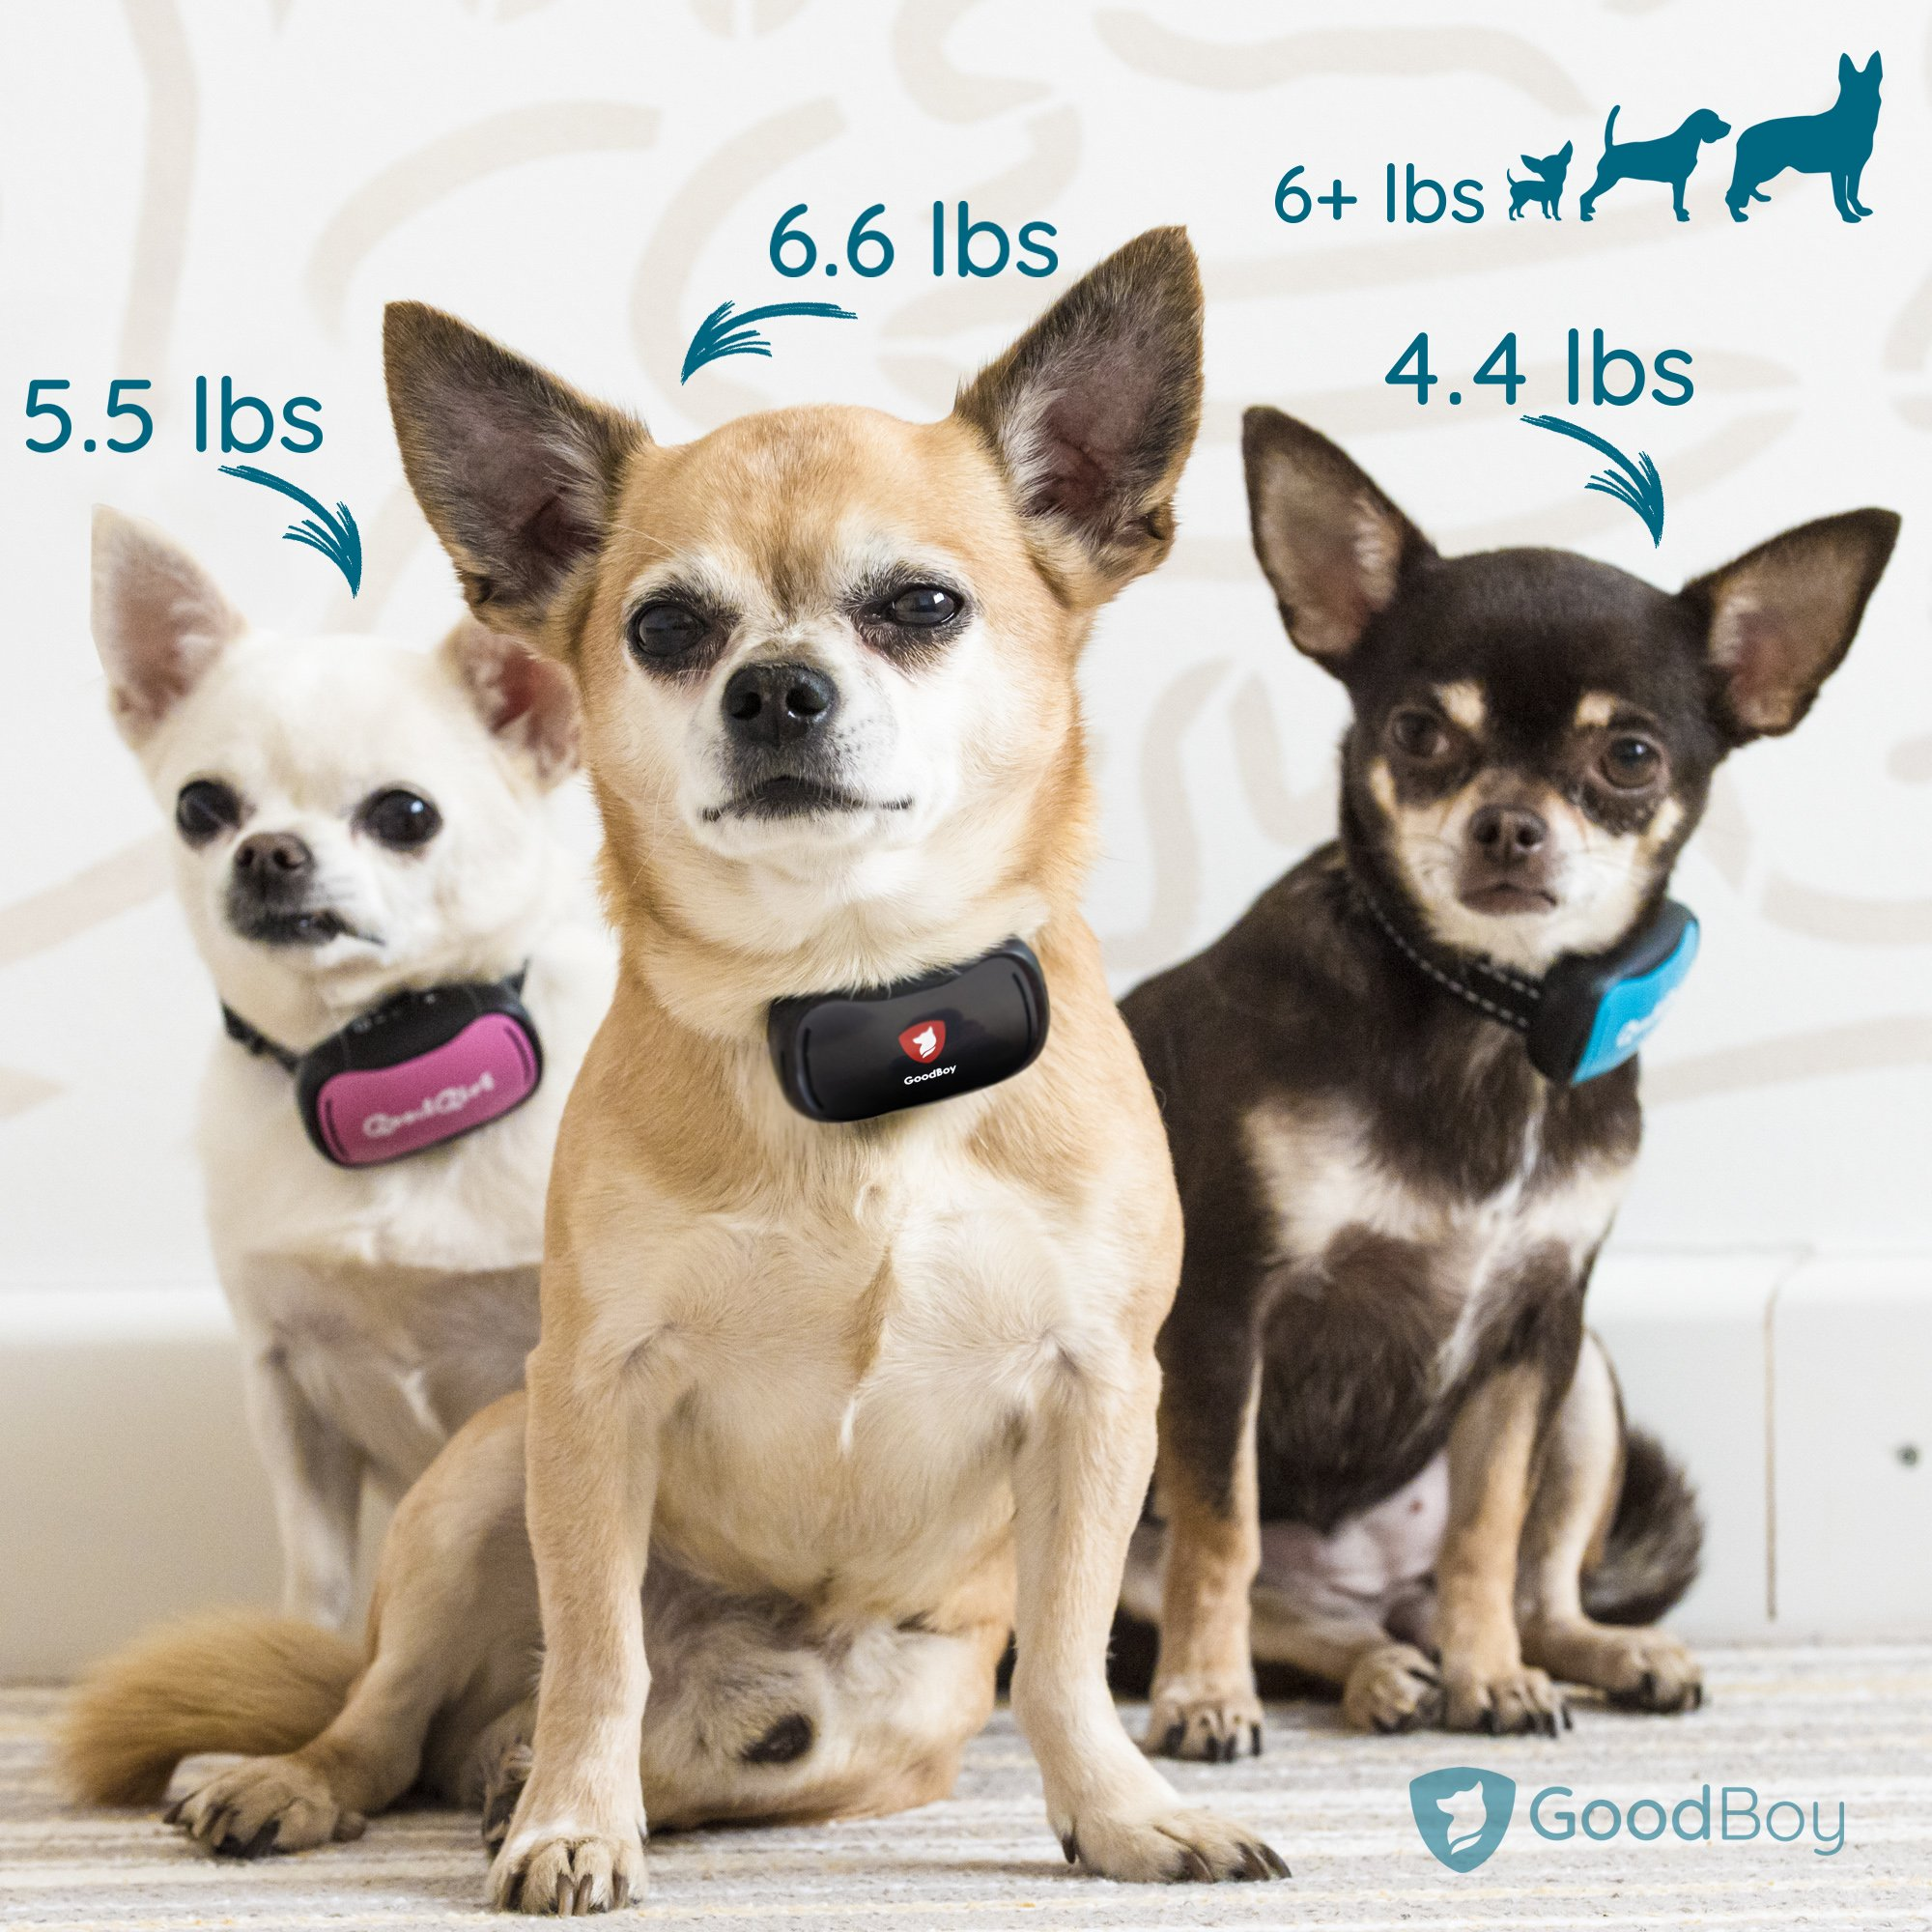 GoodBoy Small Rechargeable Dog Bark Collar for Tiny to Medium Dogs Waterproof and Vibrating Anti Bark Training Device That is Smallest & Most Safe On Amazon - No Shock No Spiky Prongs! (6+ lbs) by GoodBoy (Image #6)